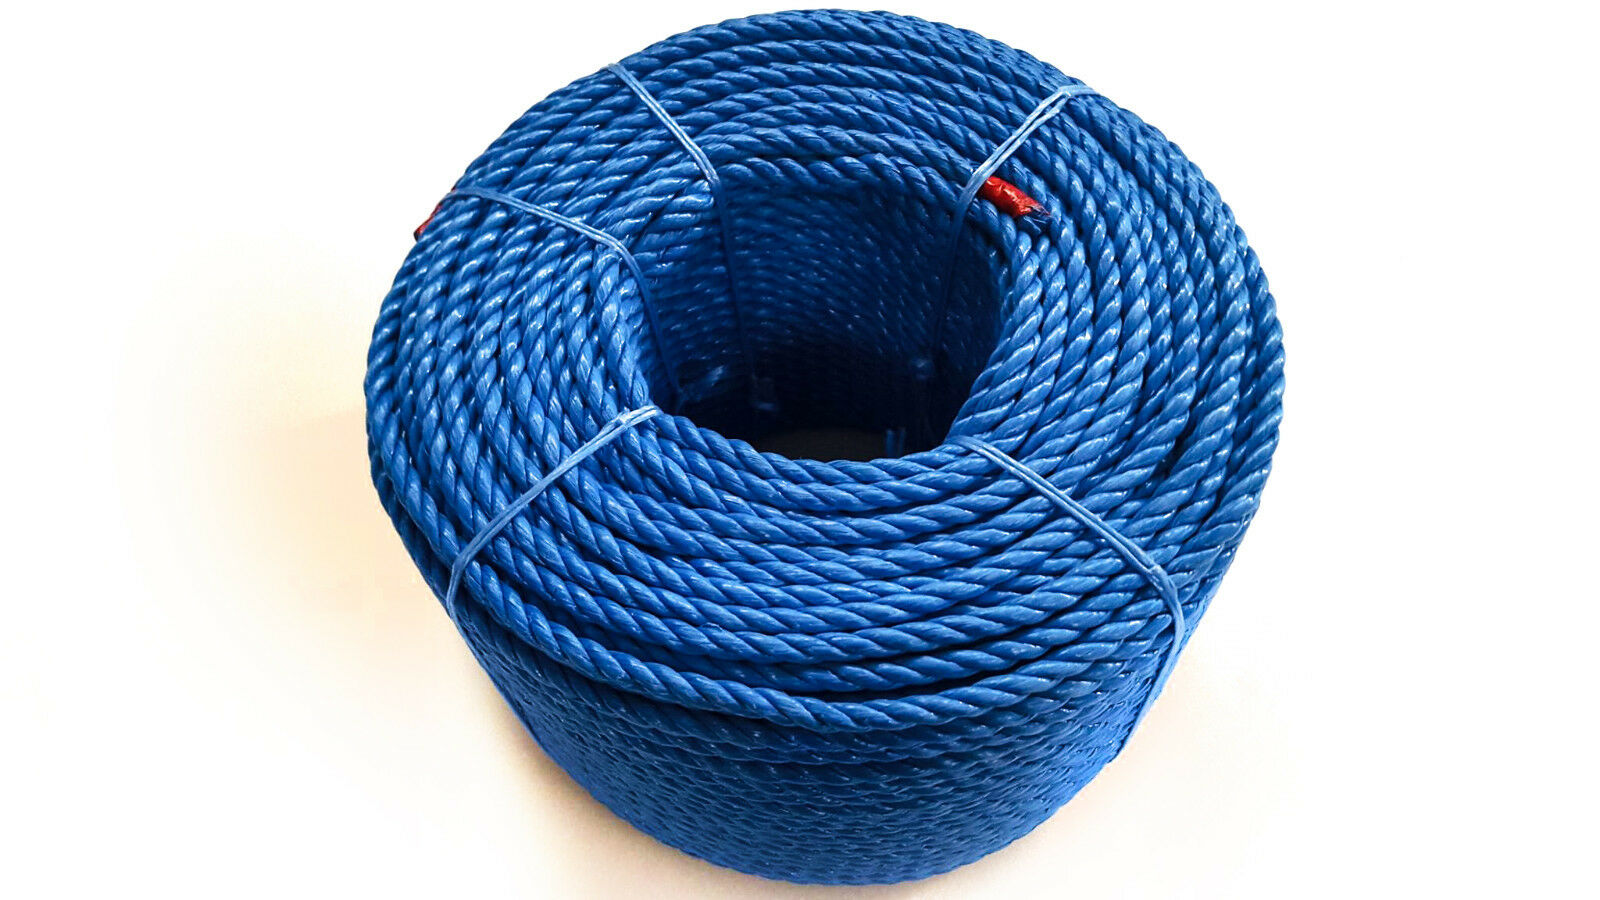 bluee Polypropylene Rope Coils, 12mm Polyrope, Sailing, Agriculture, Camping,